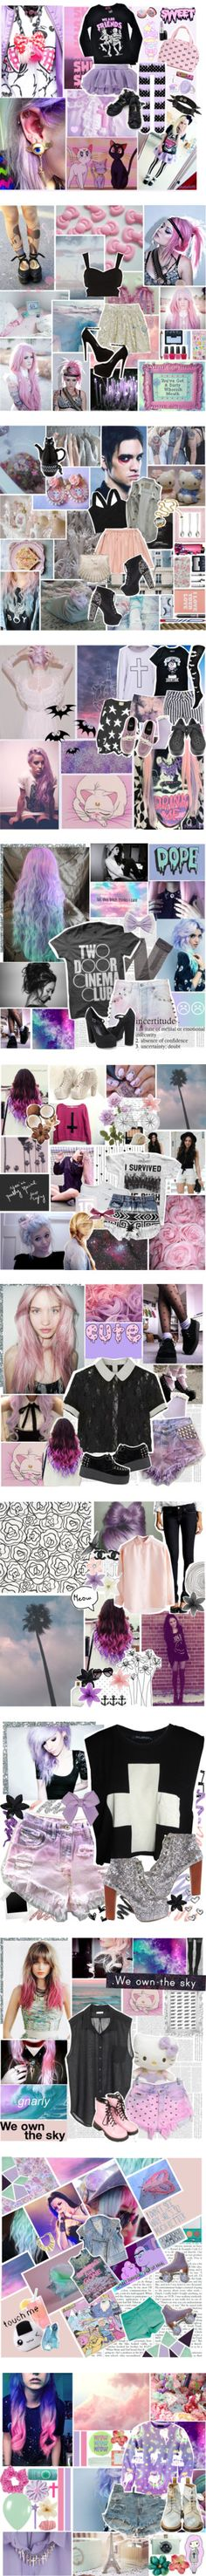 """The Best of Pastel Goth"" by metronomeorchid ❤ liked on Polyvore"